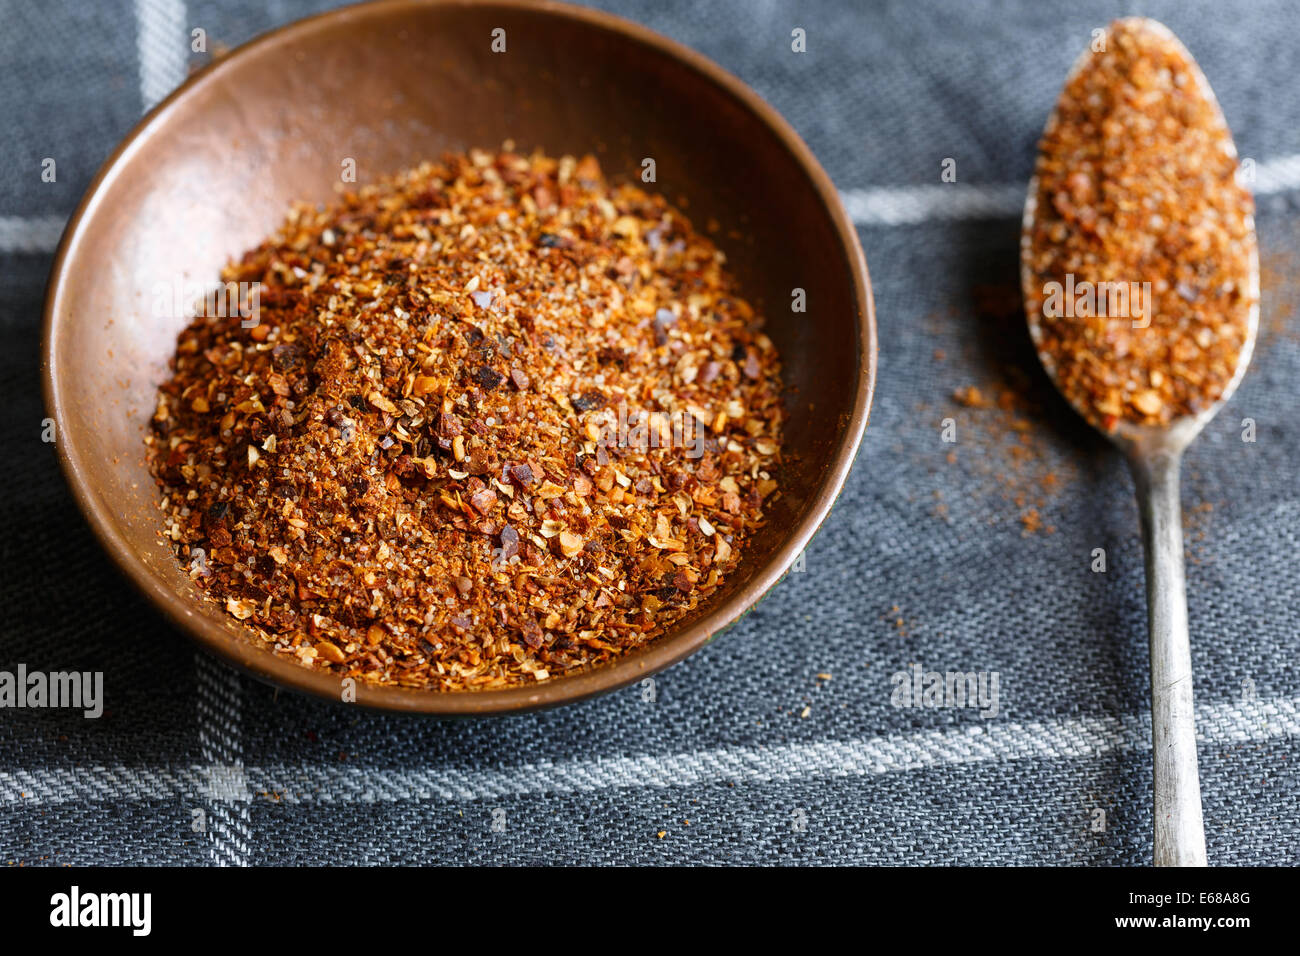 Merquén,a smoked chili pepper is a traditional condiment in Mapuche cuisine in Chile and other Andean regions. - Stock Image